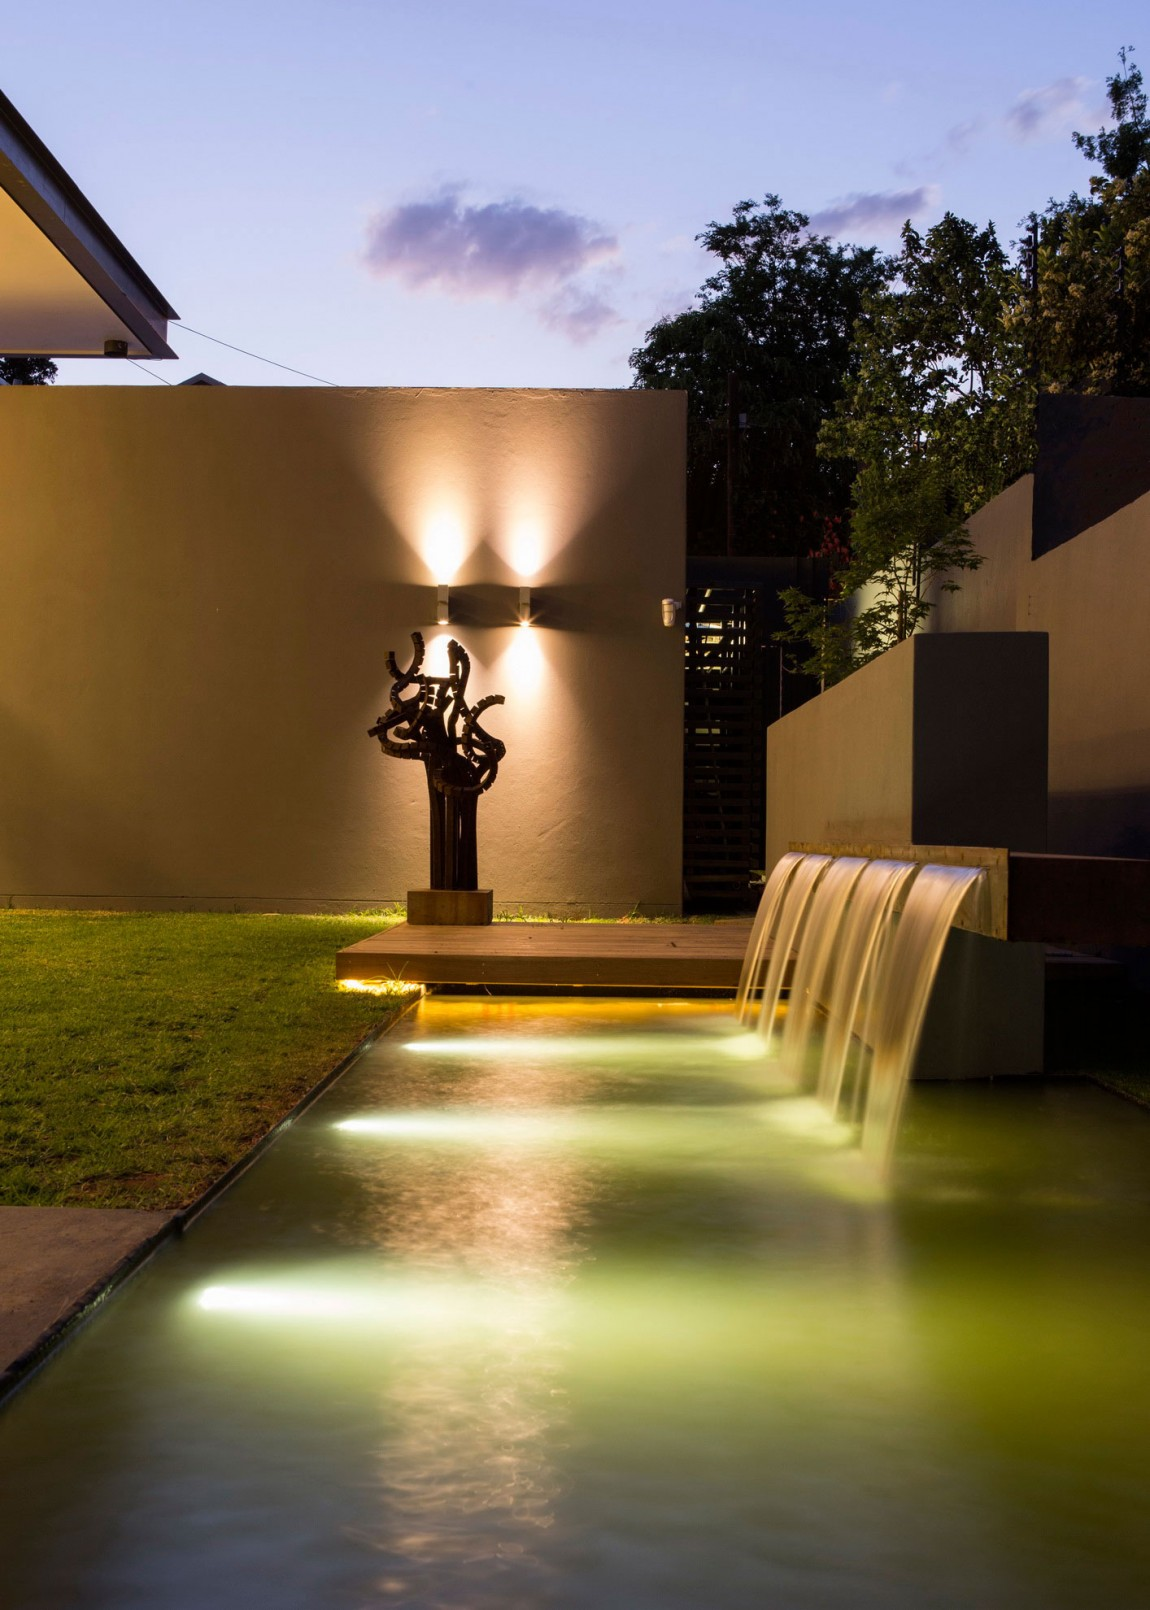 Outdoor swimming pool at night in House Sar by Nico van der Meulen Architects